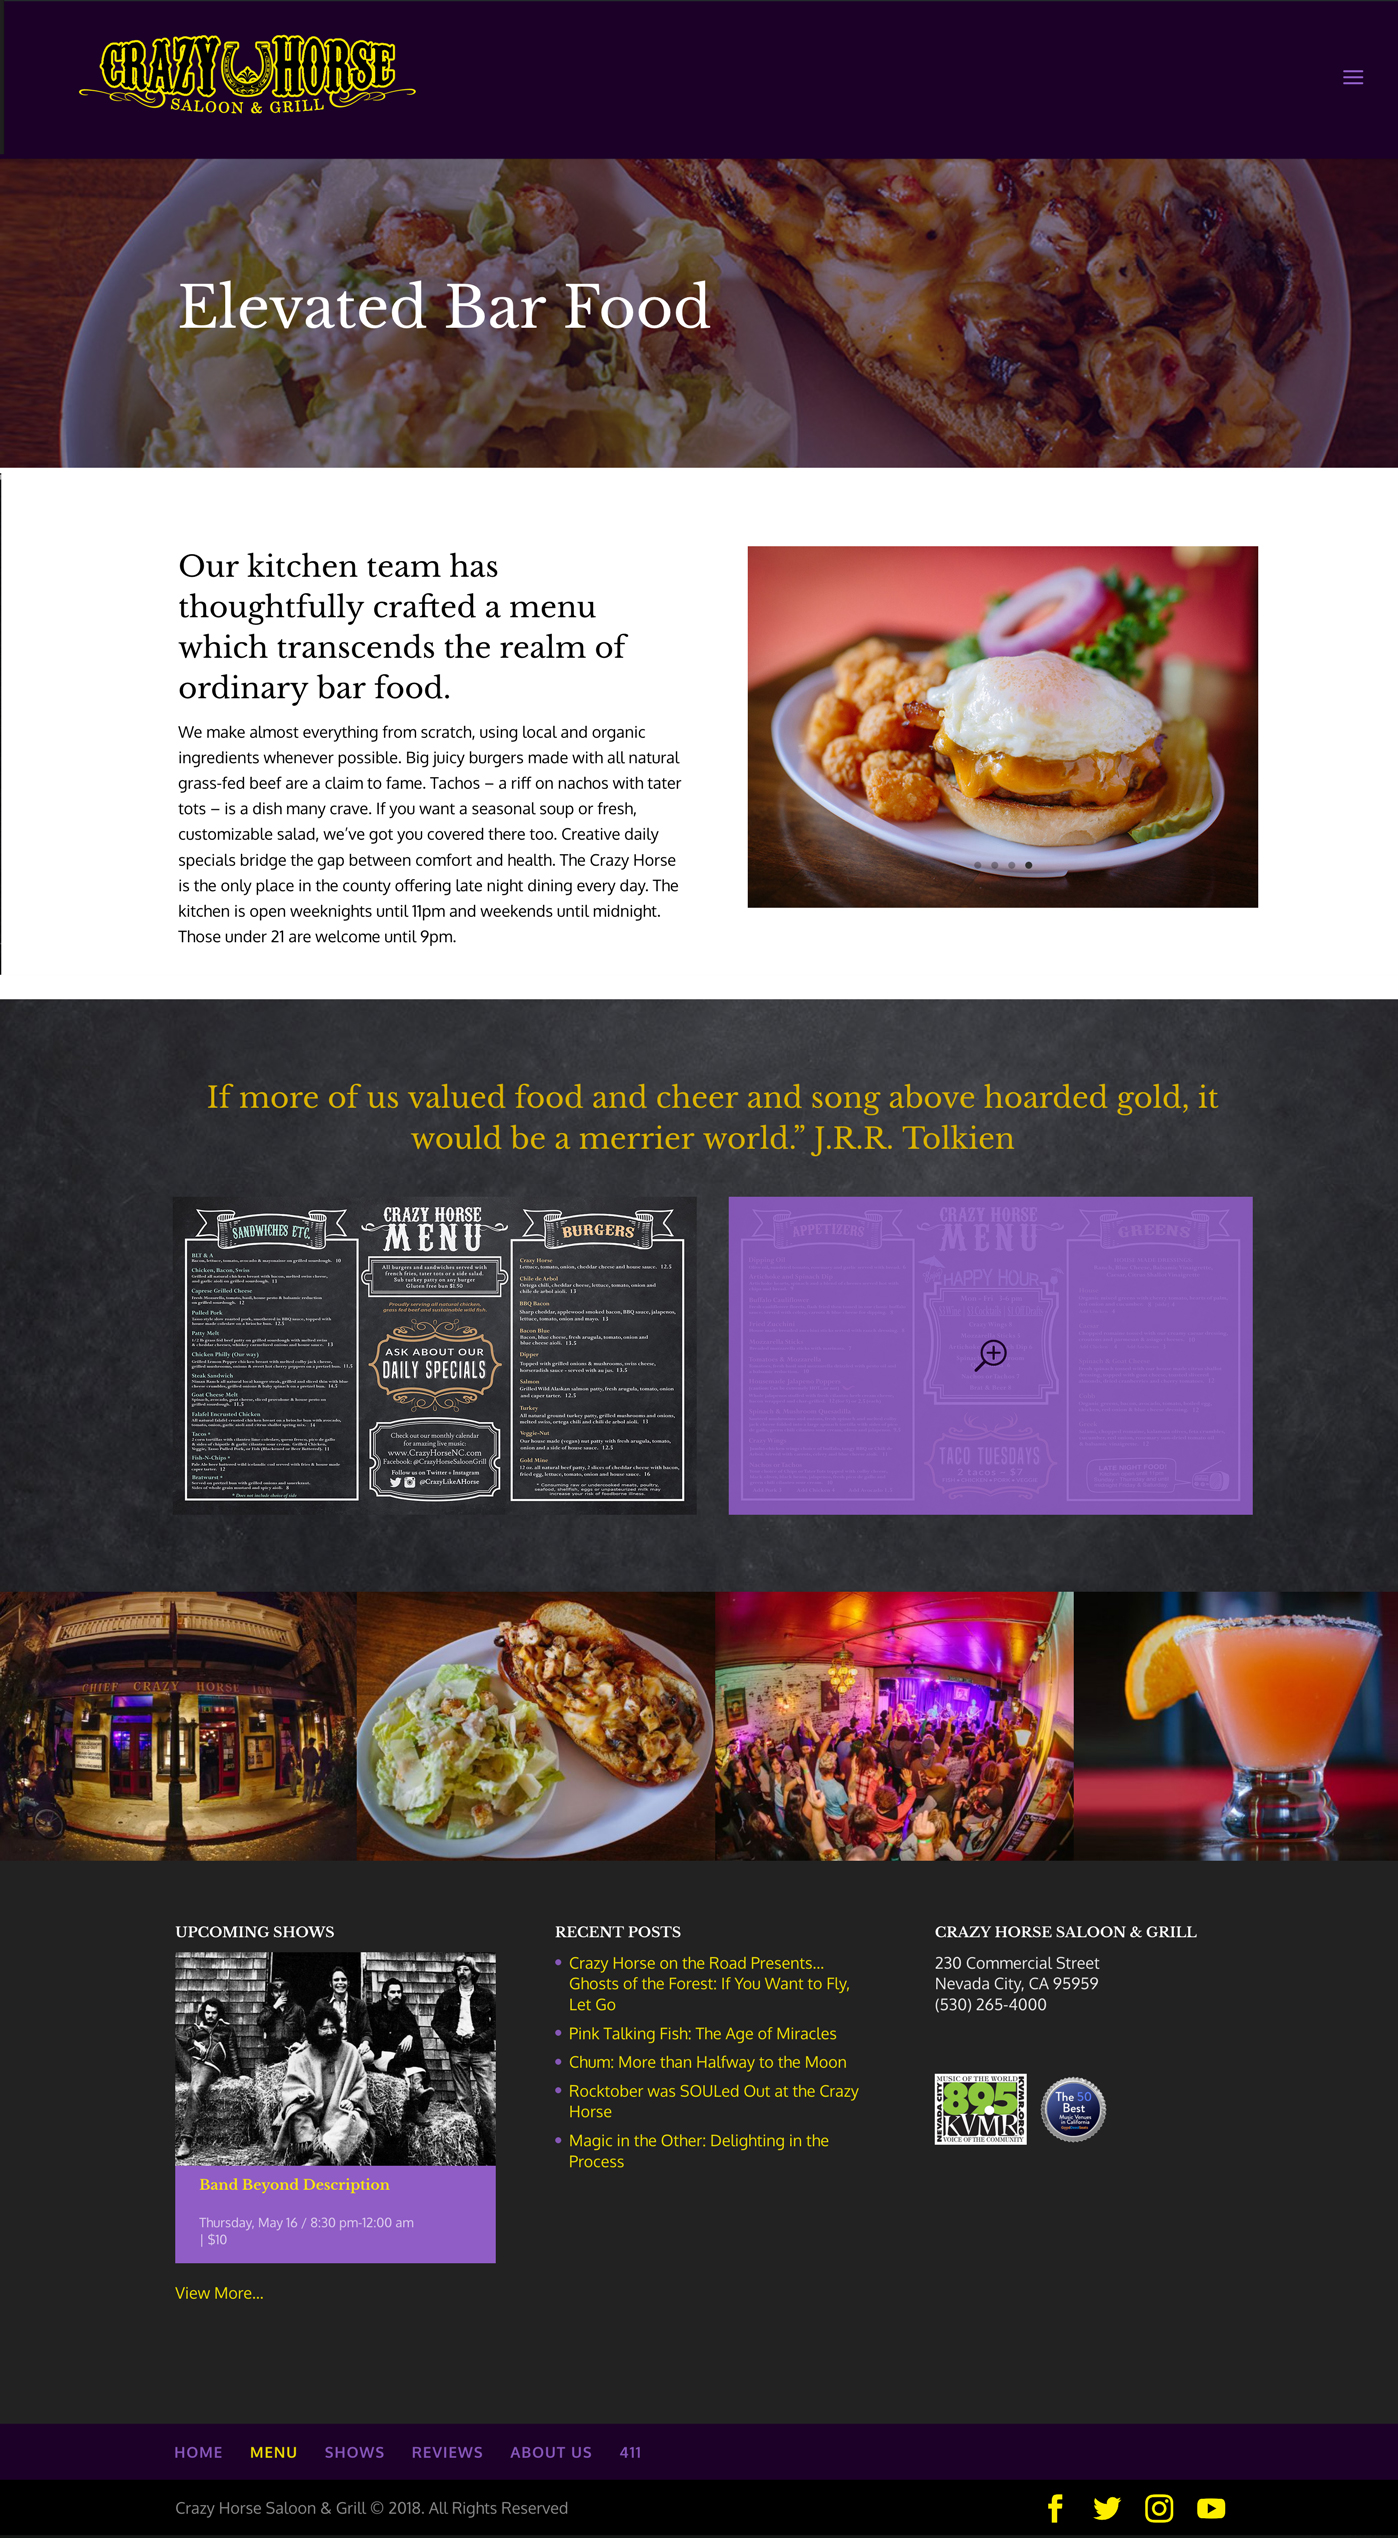 WEBSITE_Crazy-Horse-Saloon-Grill_menu.jpg